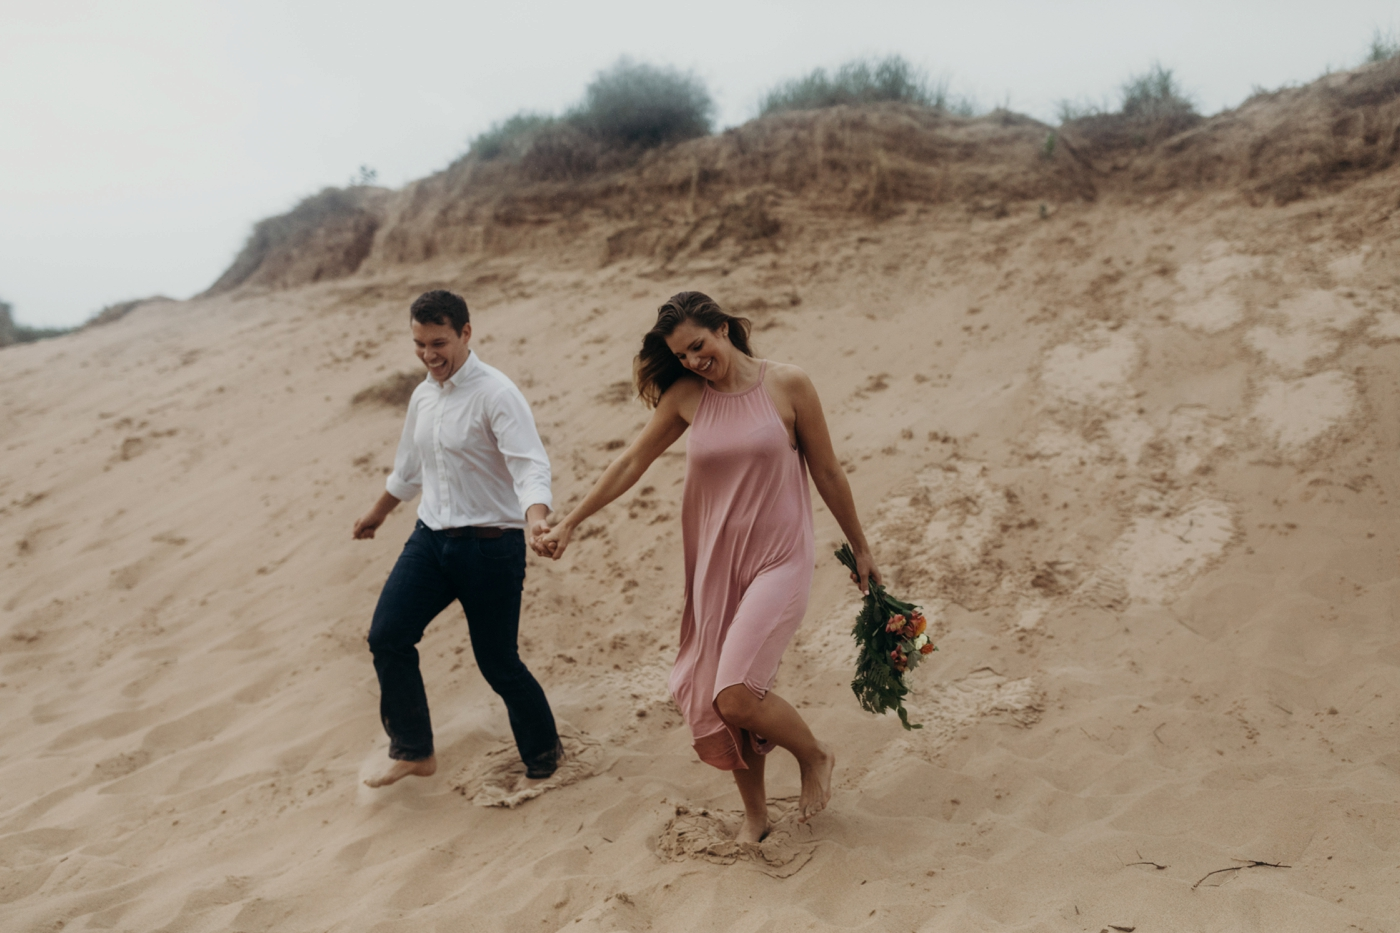 Sleeping_Bear_Dunes_Couples_Adventure_Session_Adventure_Wedding_Photographer_Hiking_with_Heels_Brett+Emily-38.jpg